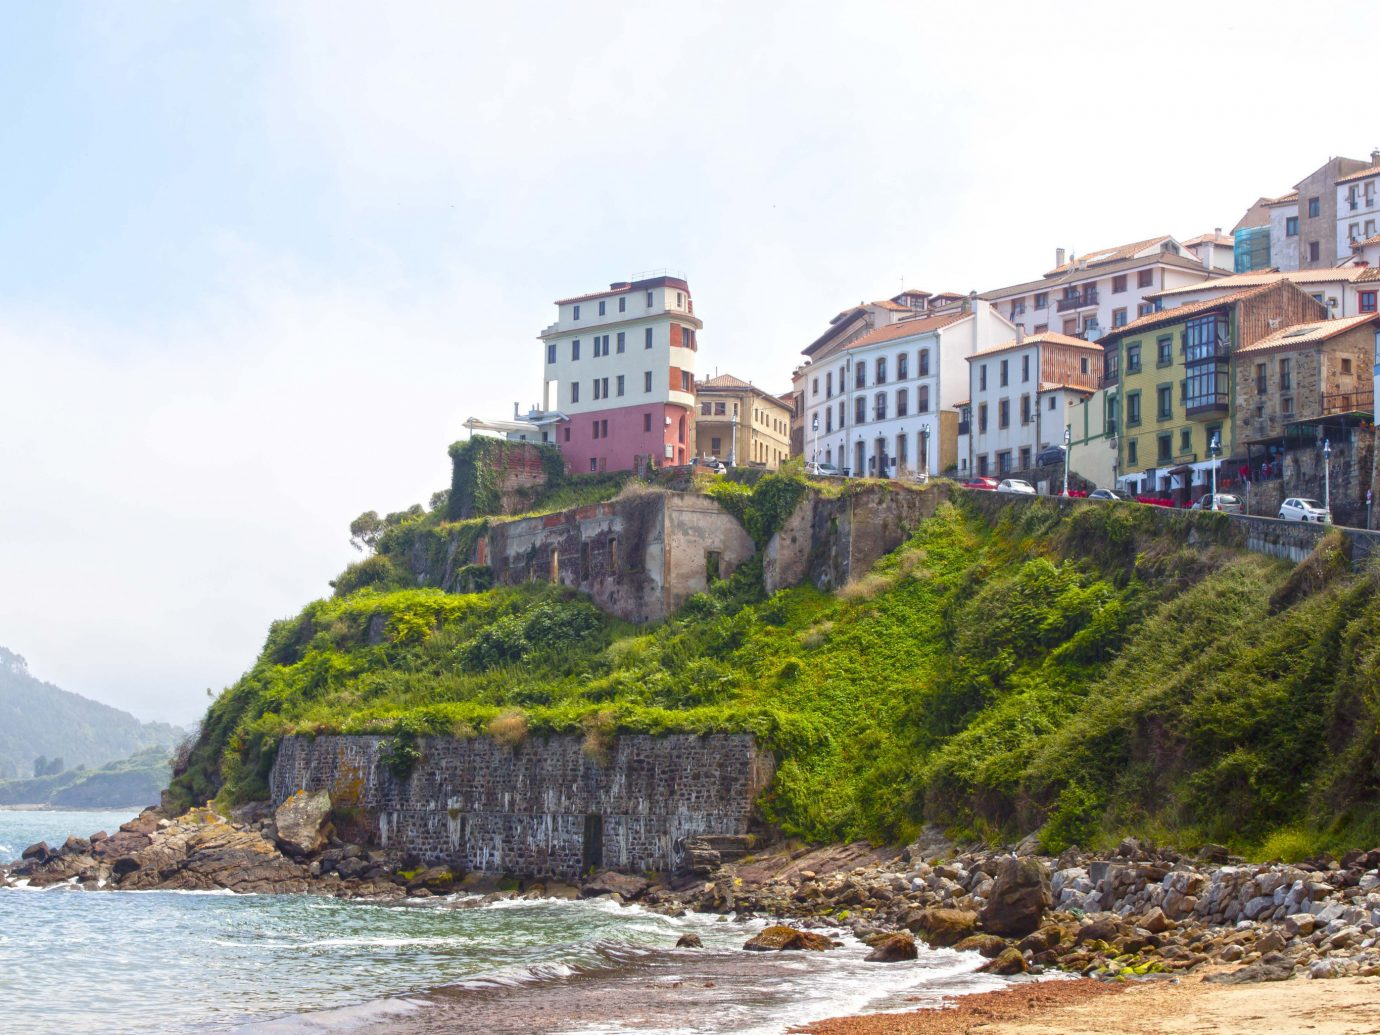 europe Spain Trip Ideas Coast Sea promontory water shore cliff sky terrain coastal and oceanic landforms building tree headland rock house bay City